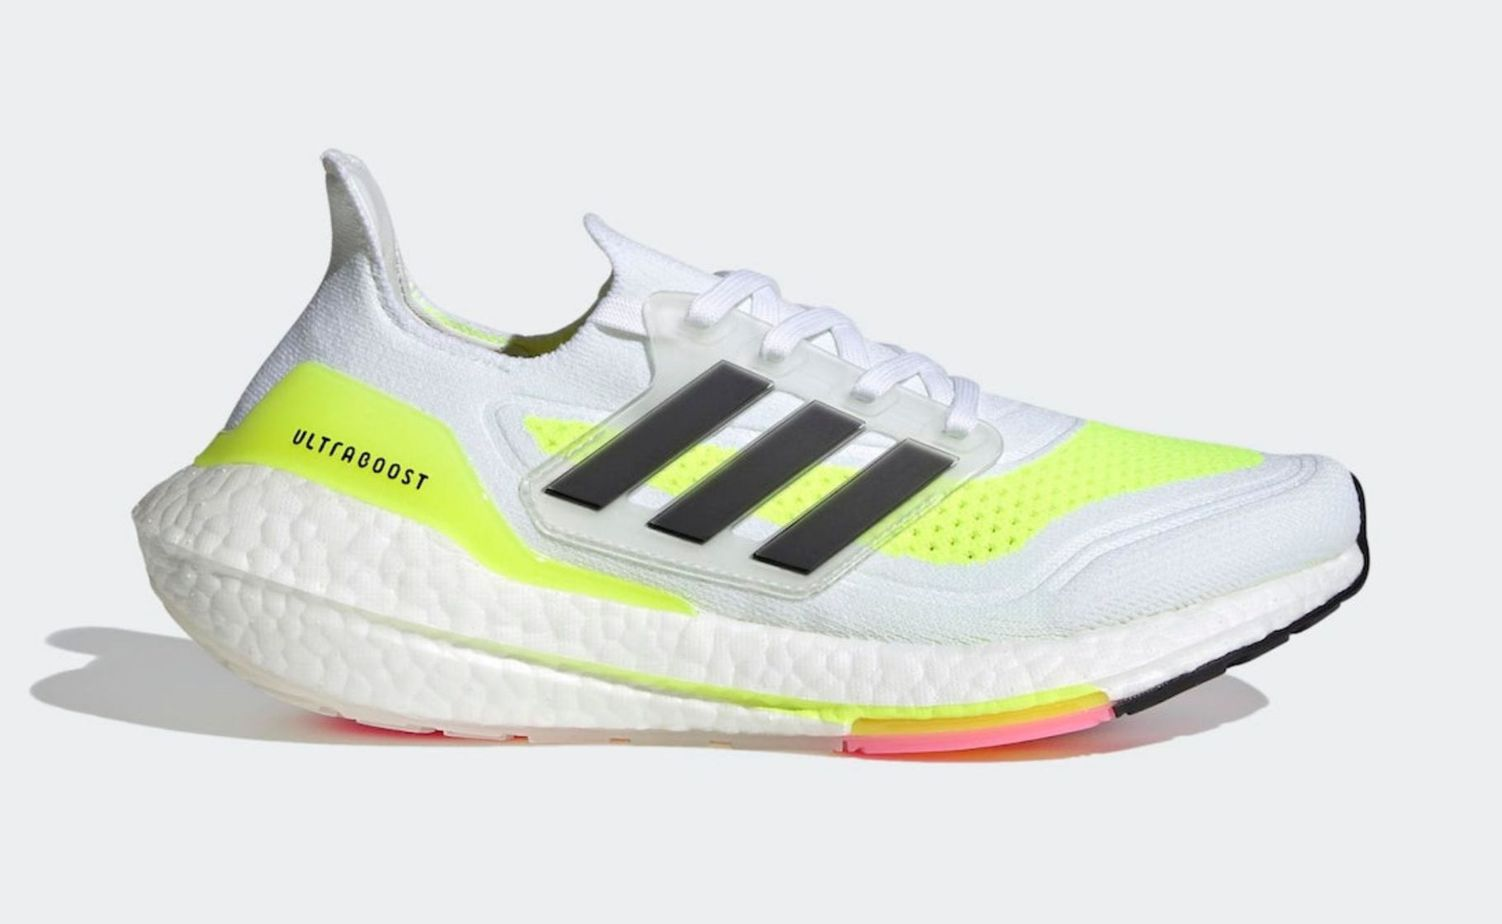 Adidas Ultraboost 21 Review - The revolutionary shoe strikes back